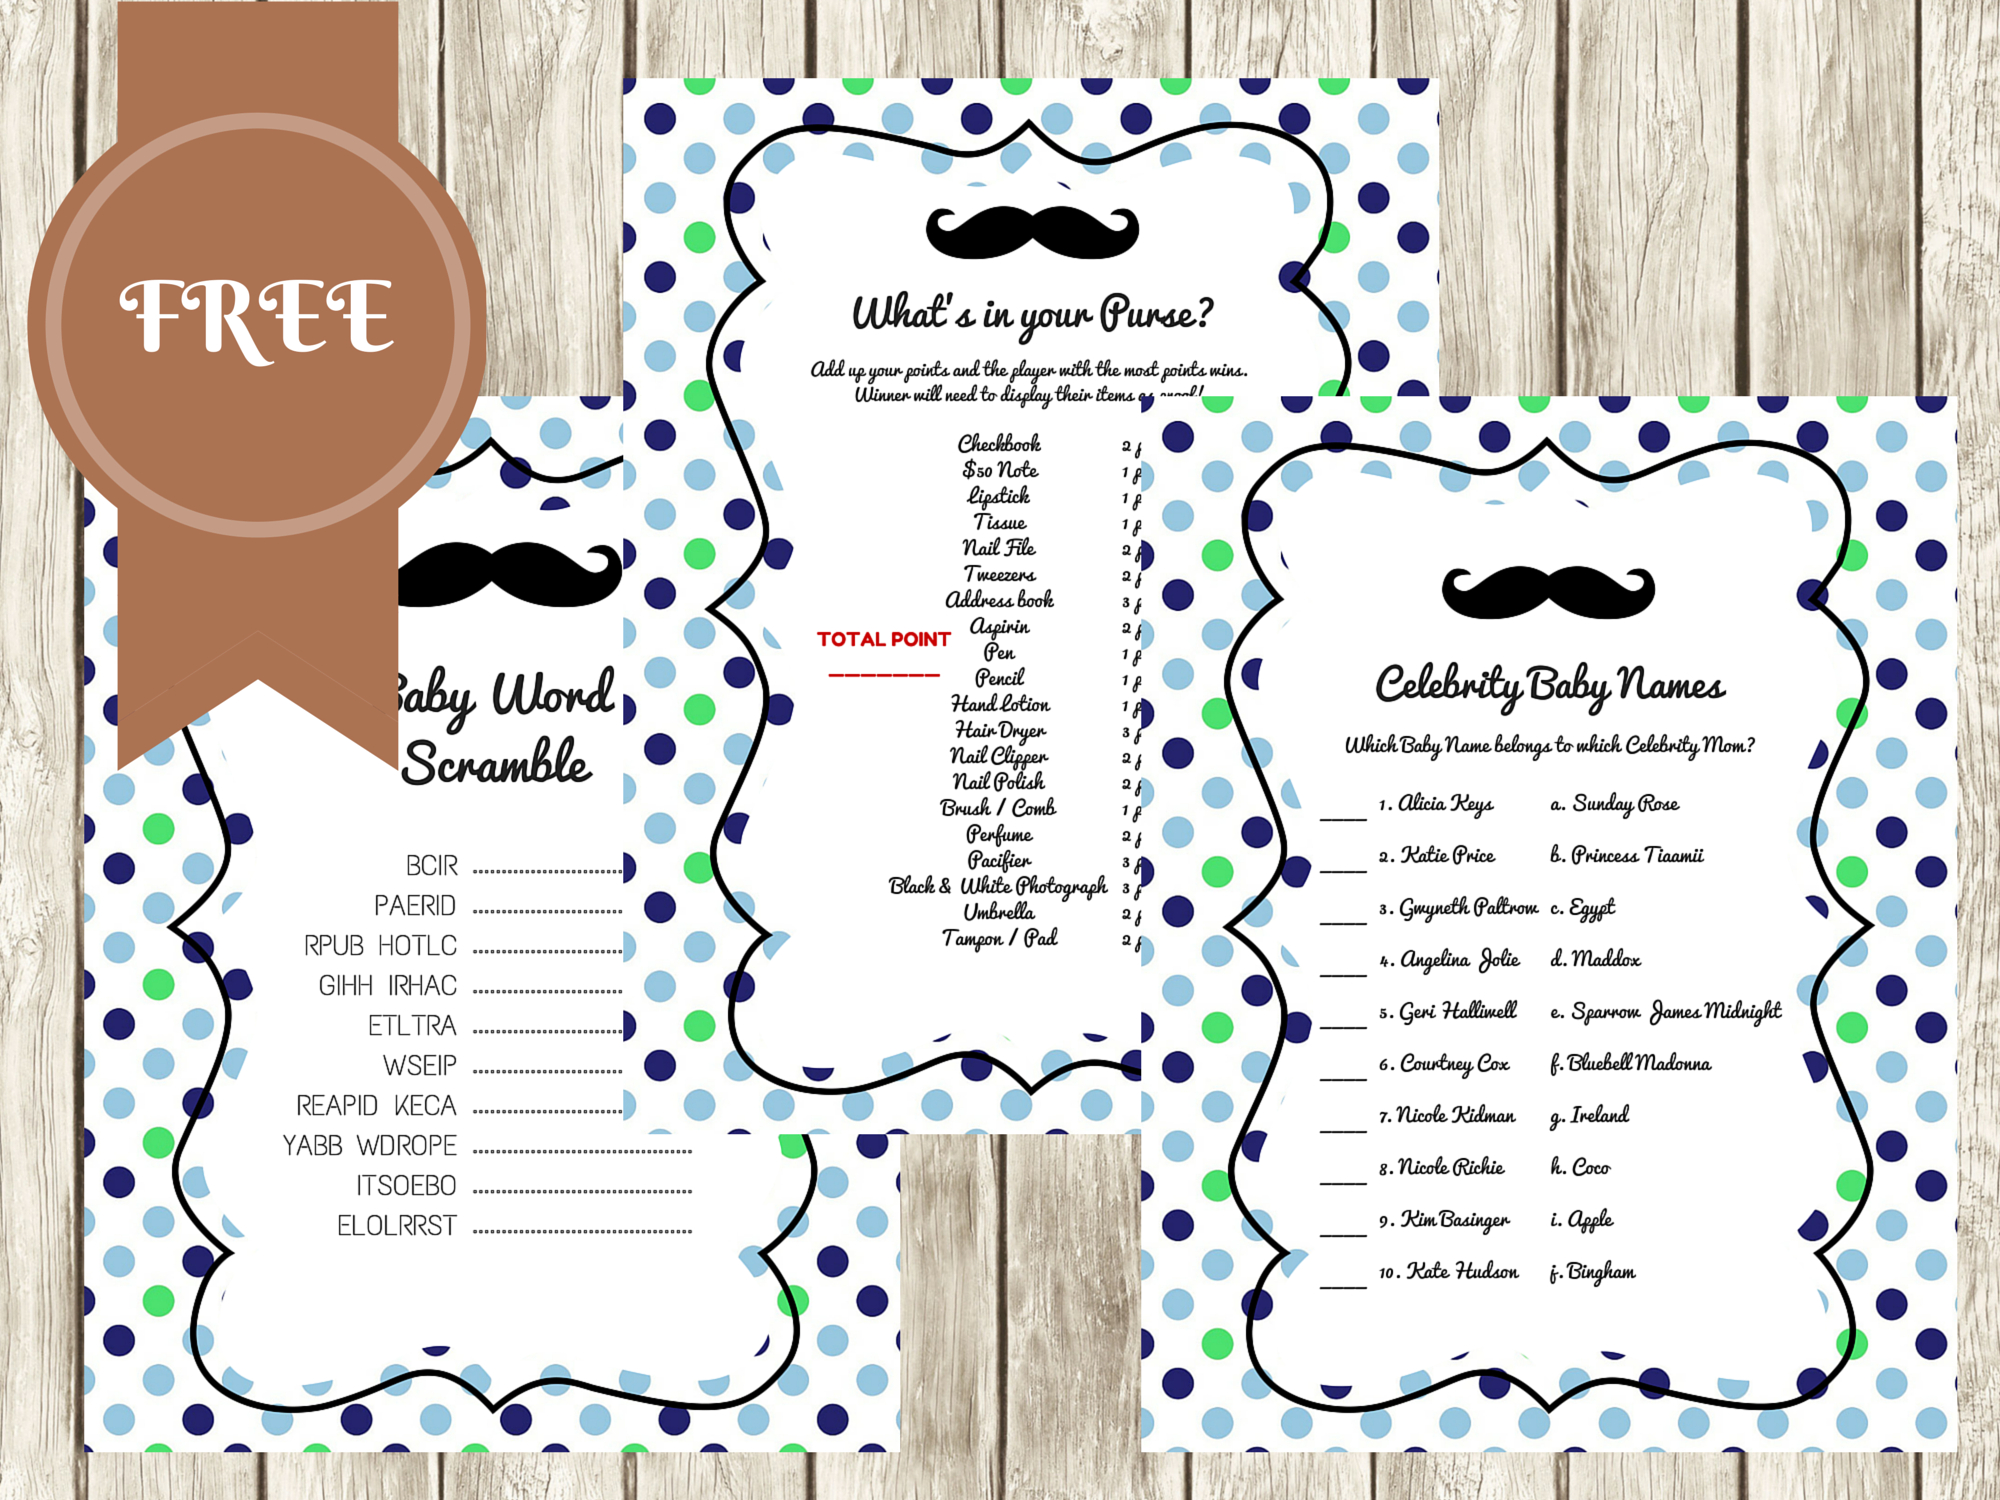 Free Mustache Baby Shower Games - Baby Shower Ideas - Themes - Games - Free Printable Baby Shower Games What's In Your Purse